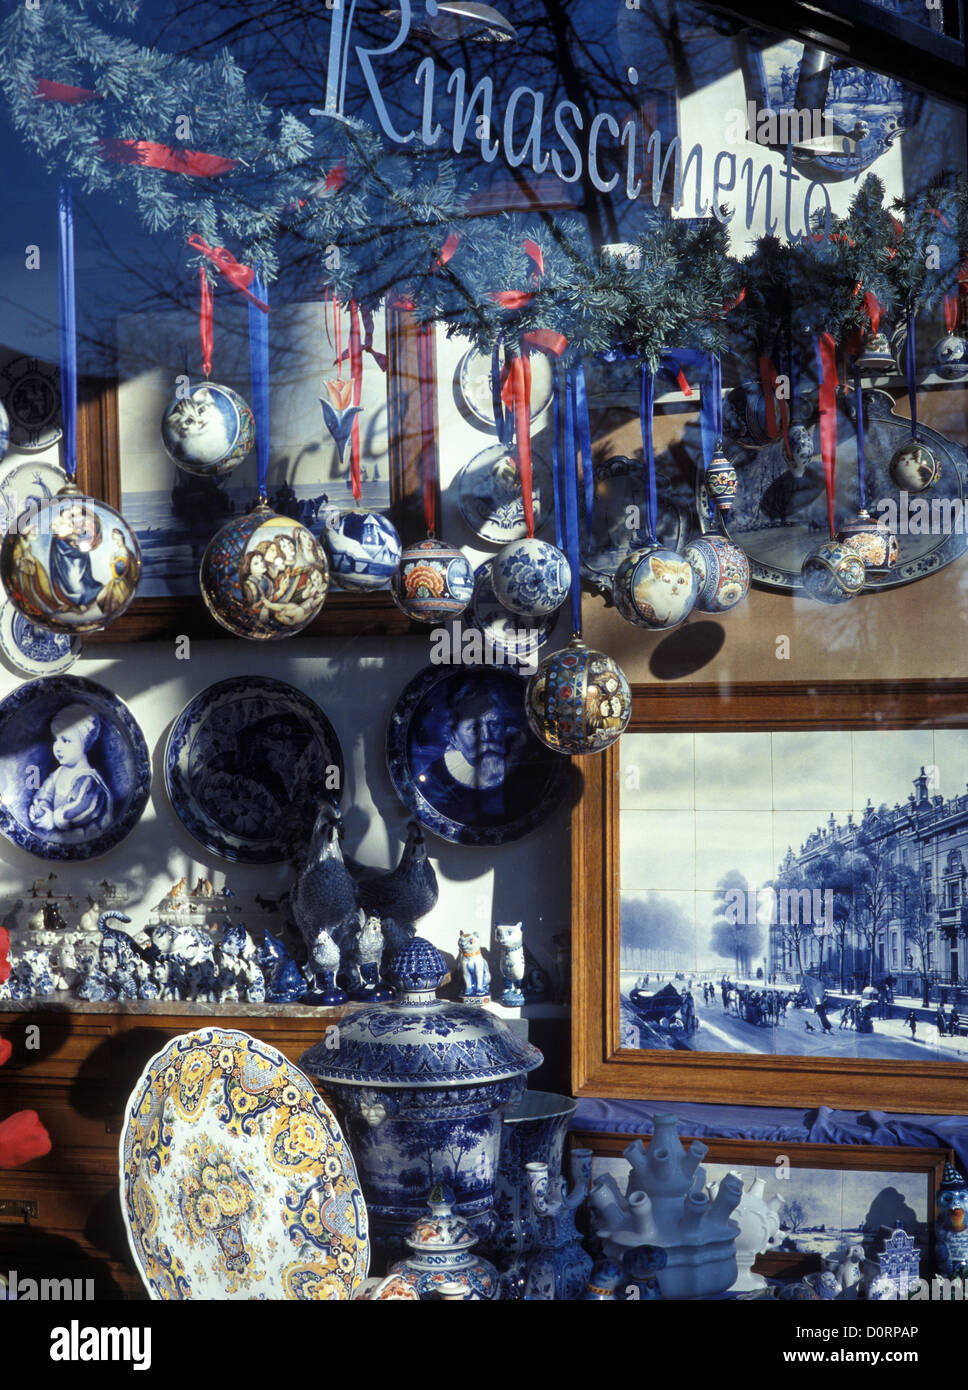 Netherlands, Amsterdam, shop front with Delf ware and other pottery items. - Stock Image